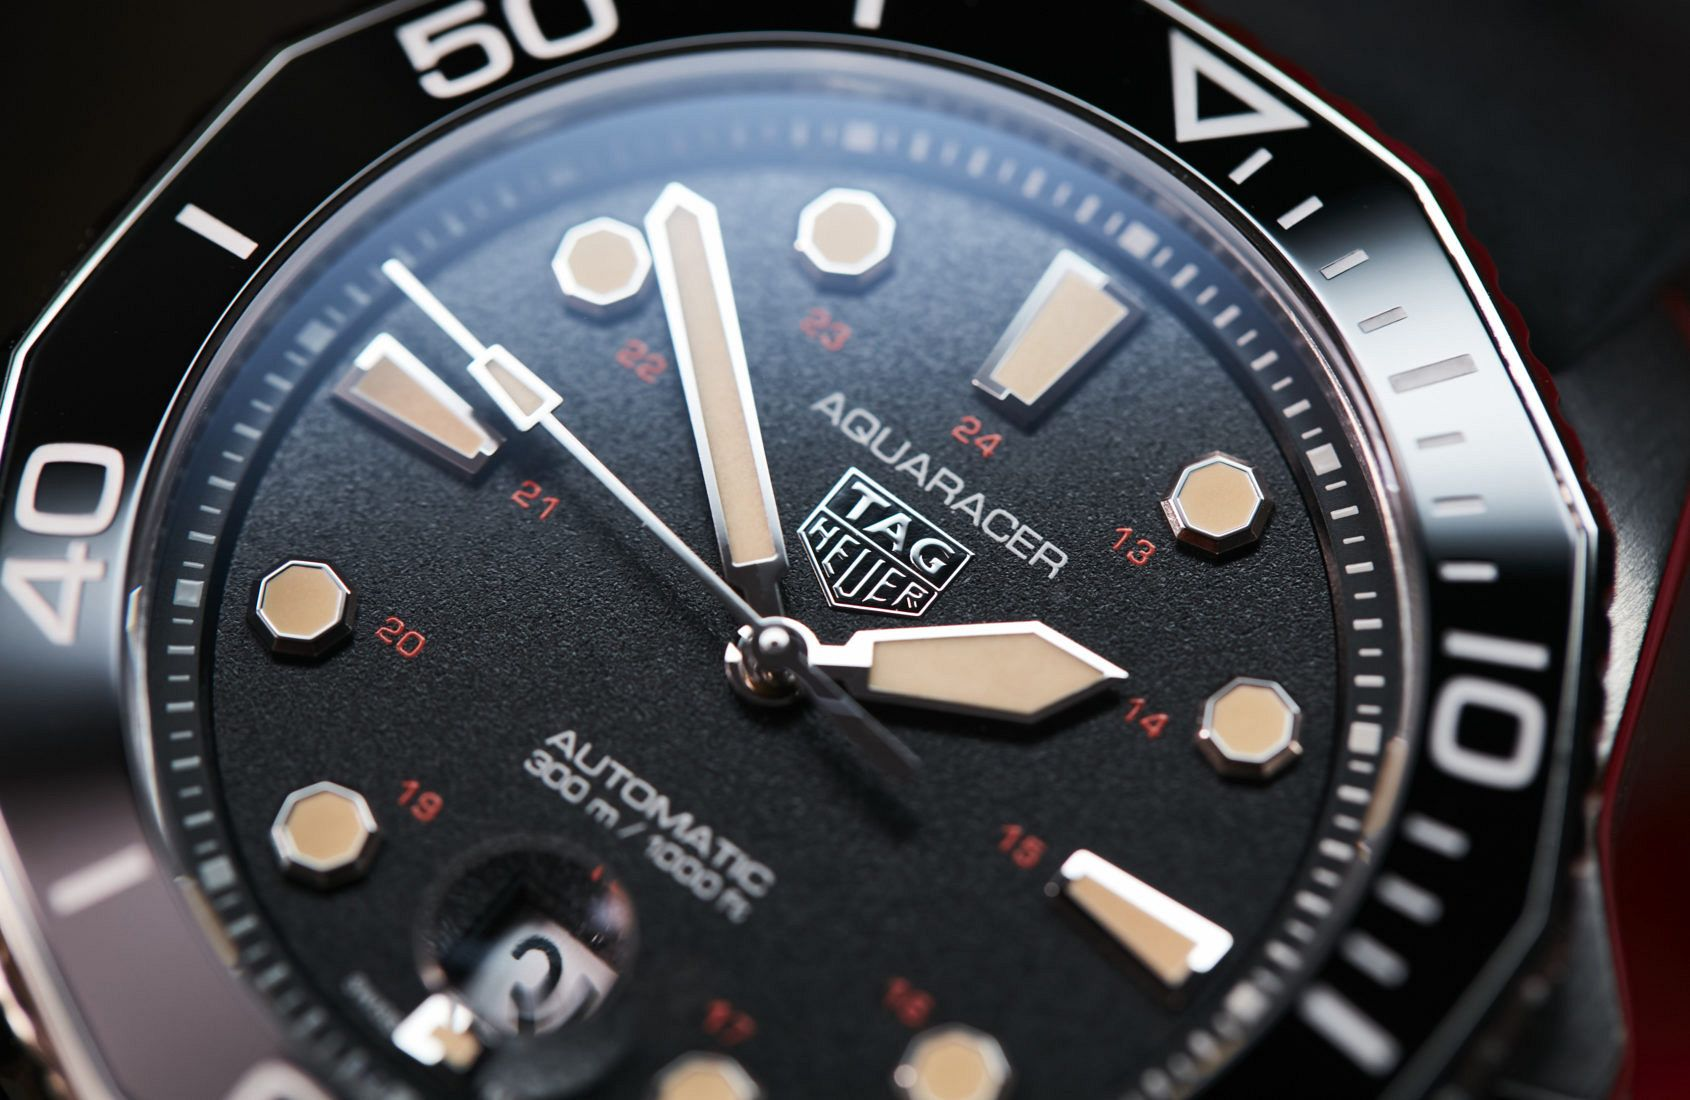 VIDEO: The TAG Heuer Aquaracer Professional 300 Tribute to Ref. 844 revitalizes TAG's first diver